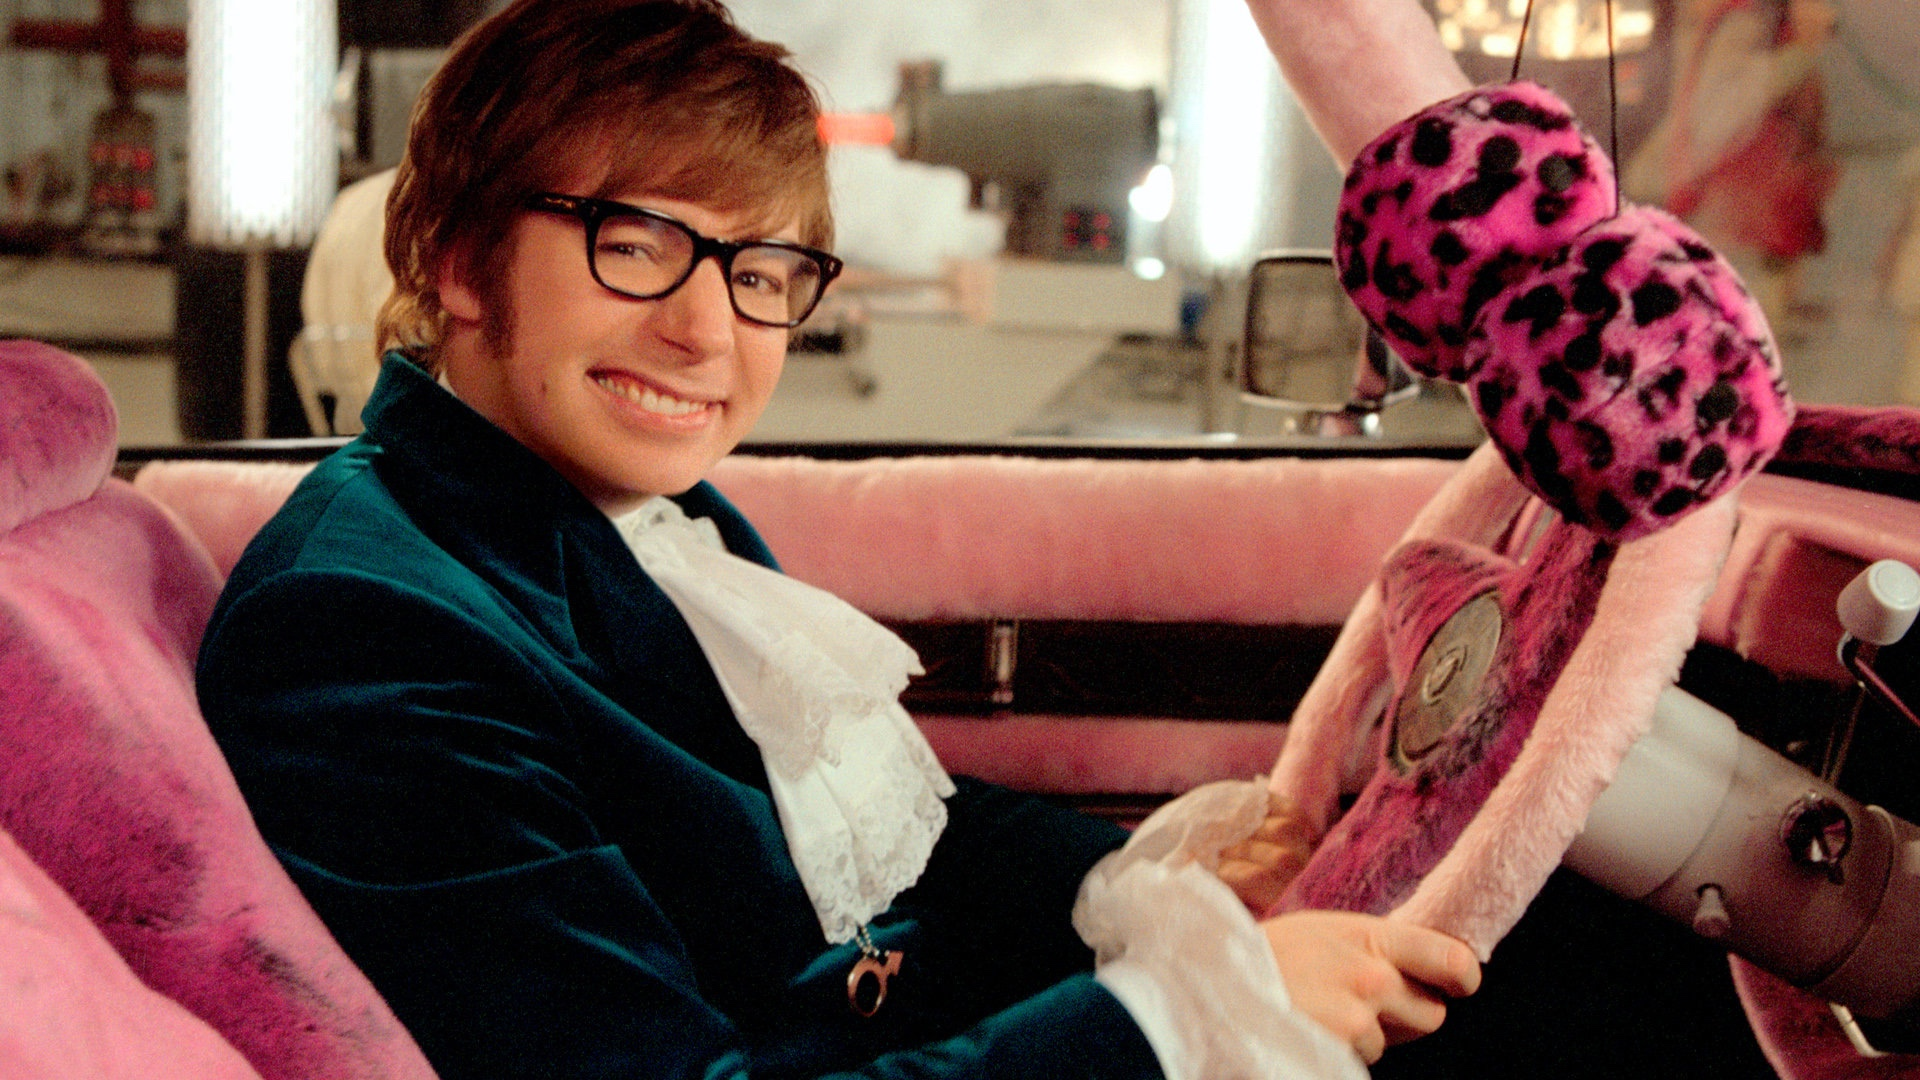 The best-selling DVD of all time - Austin Powers